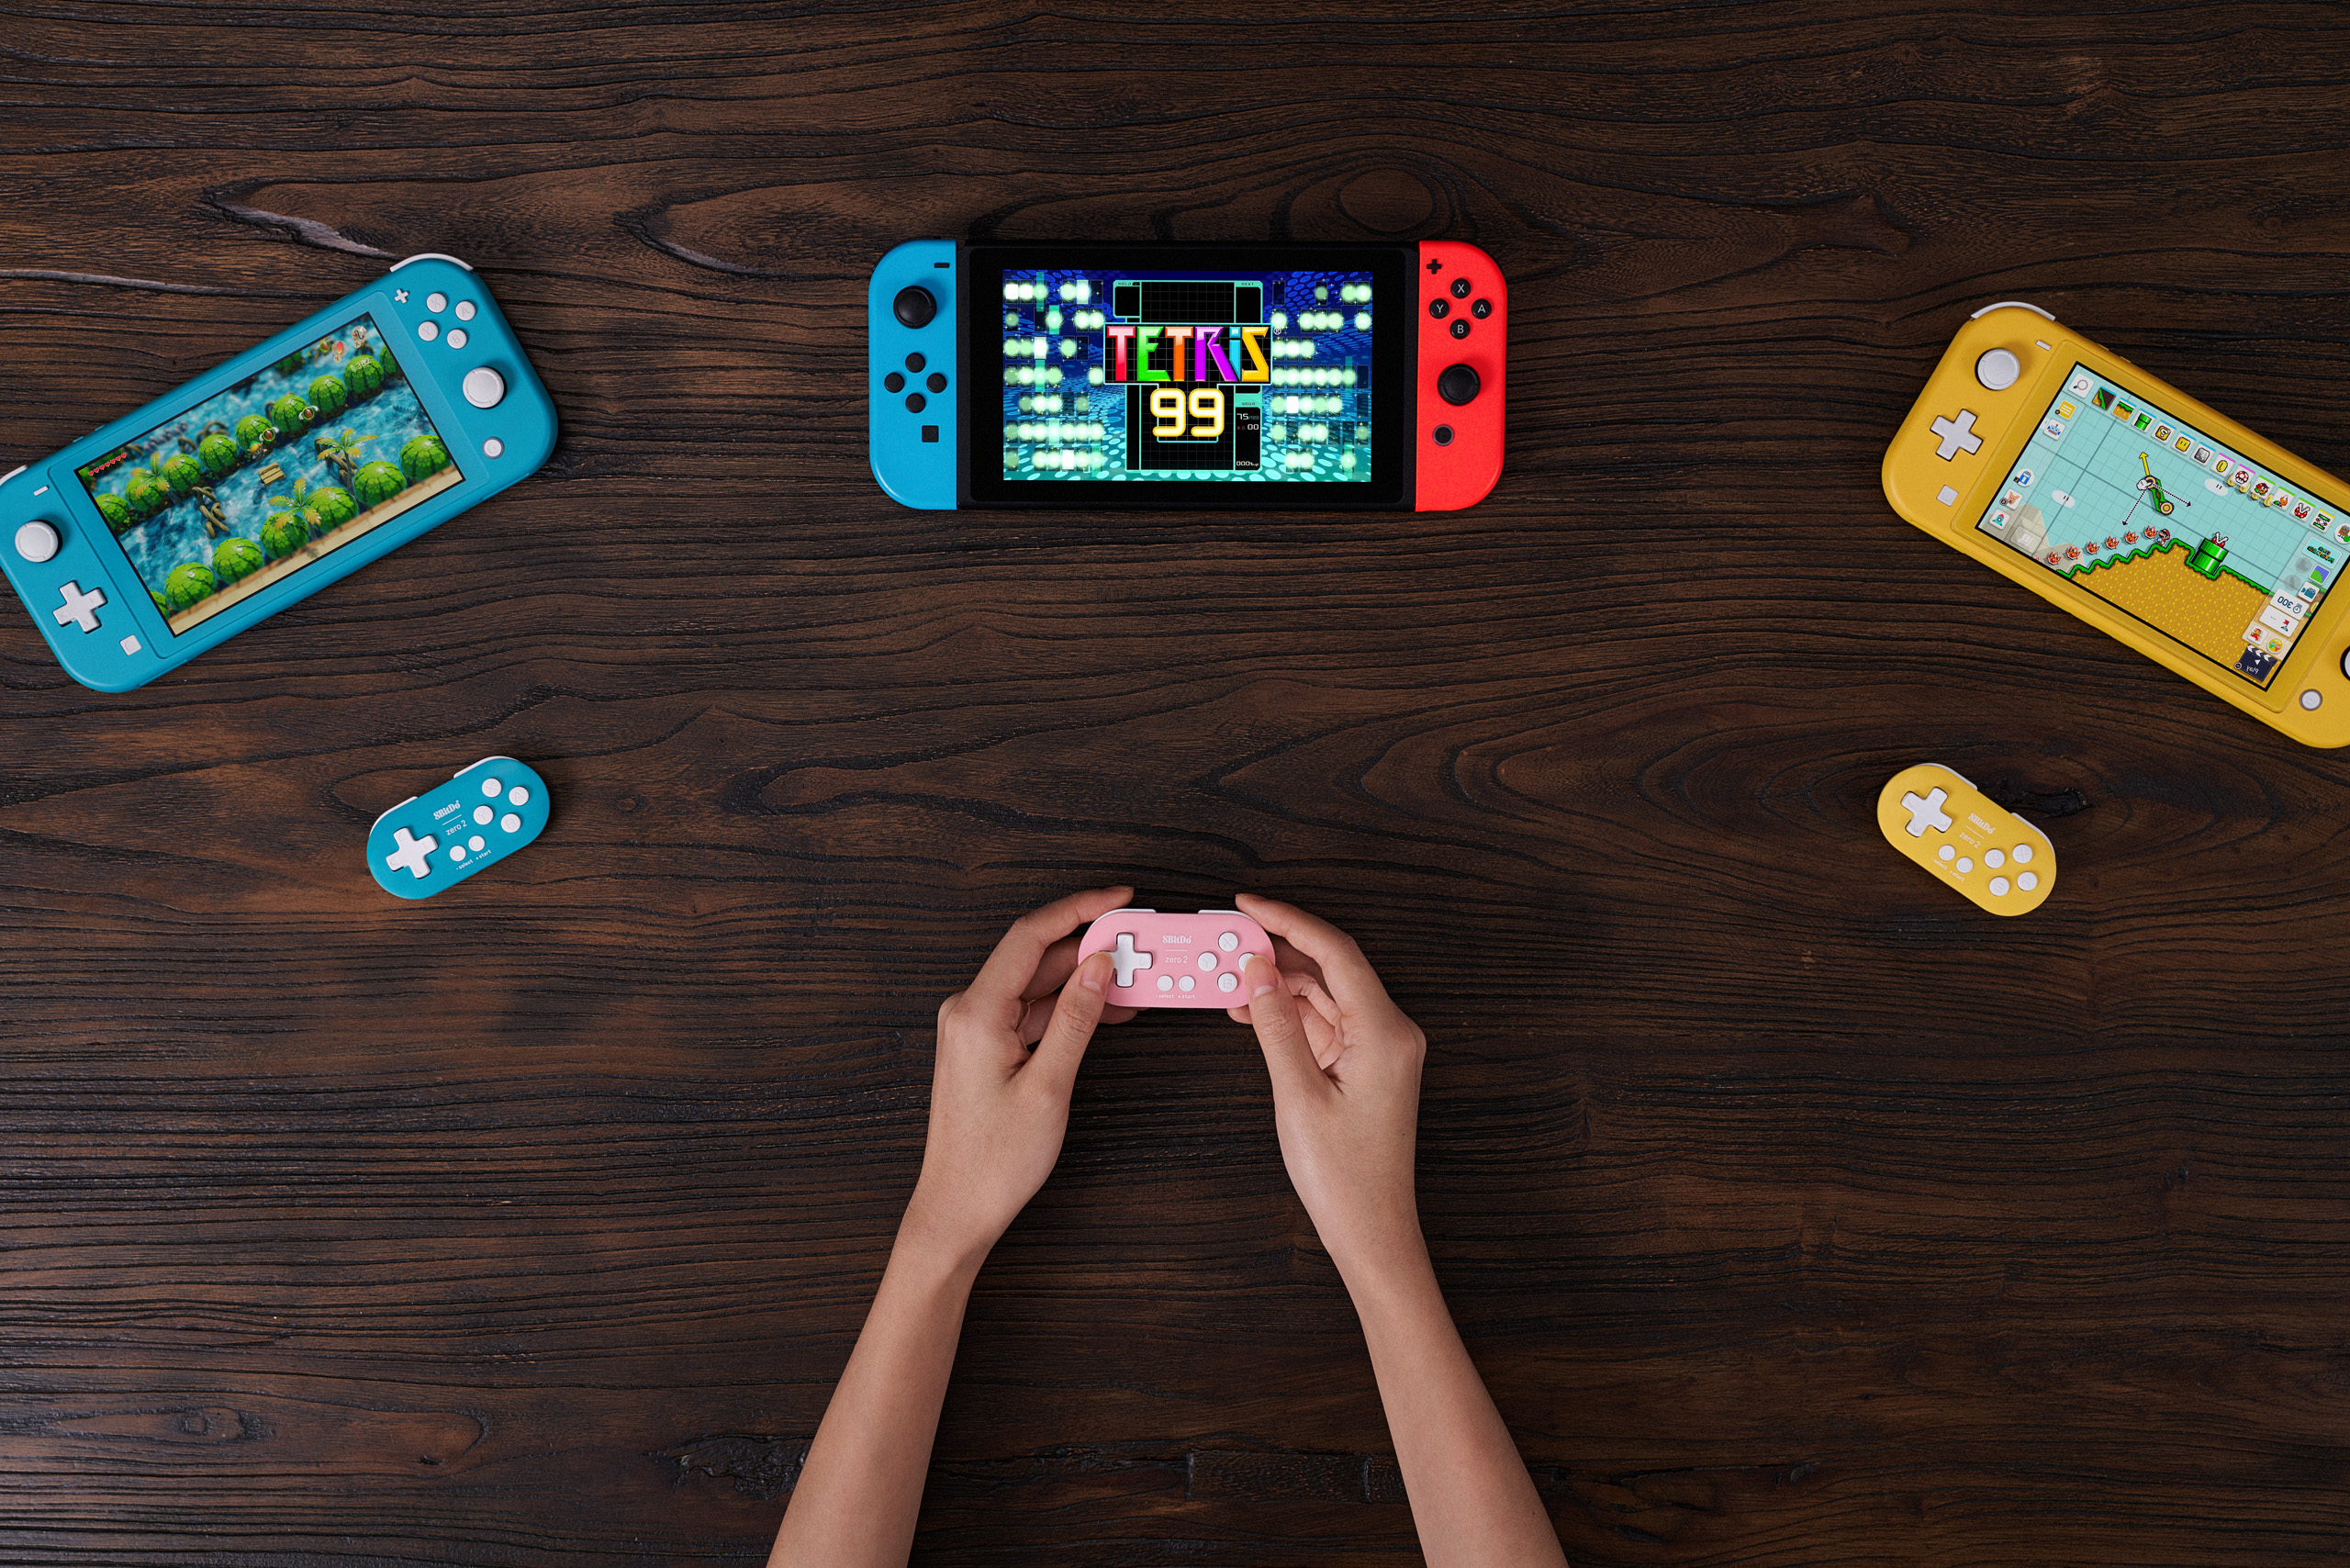 8BitDo is making one of the smallest controllers ever made, and it works on Switch screenshot